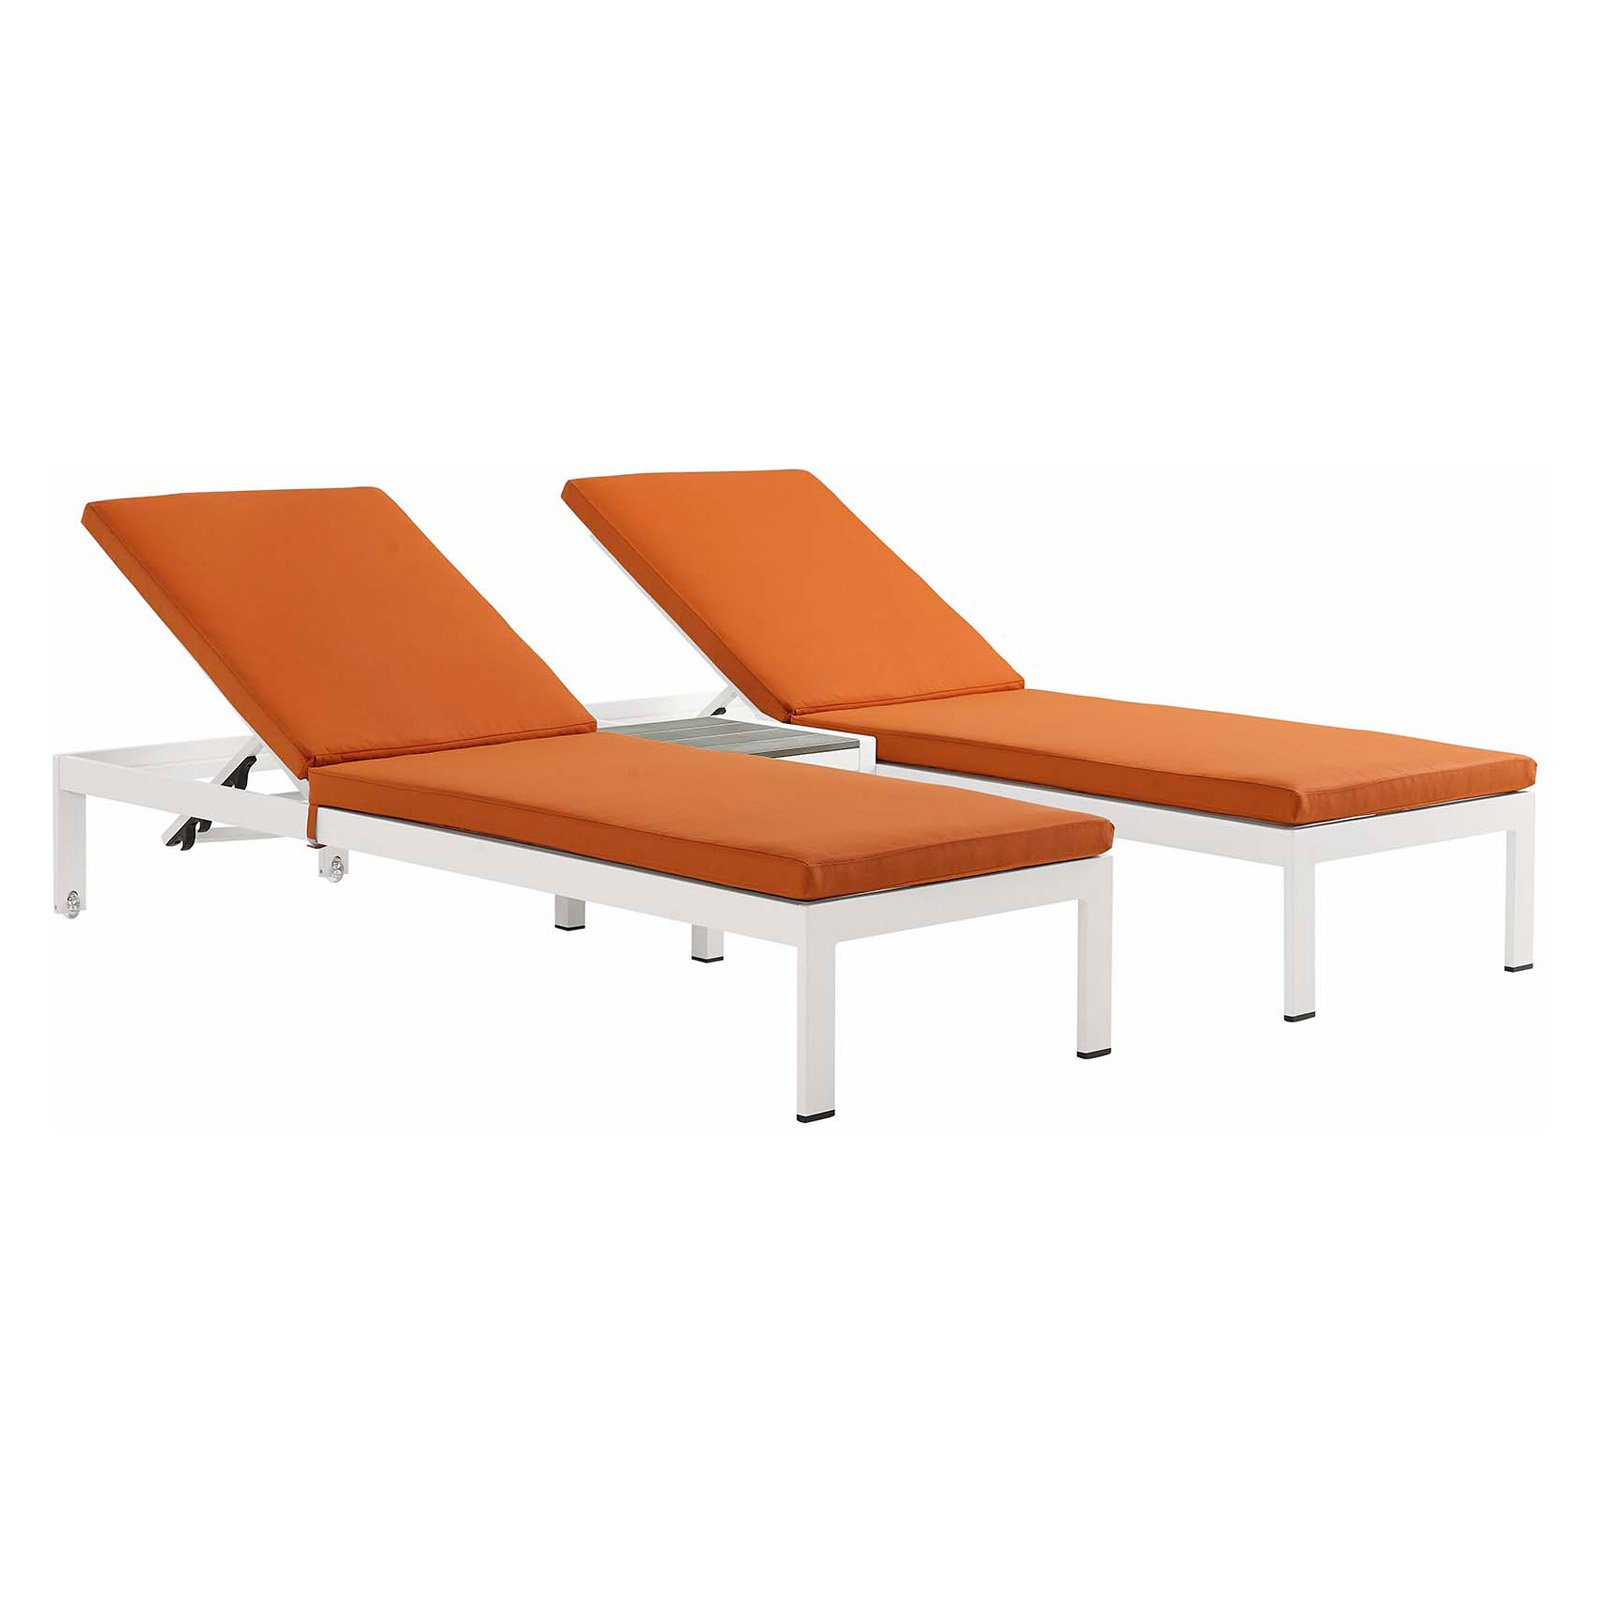 Modway Shore 3 Piece Aluminum Outdoor Patio Chaise Lounge Chair Set Orange Products In 2019 Patio Chaise Lounge Patio Chairs